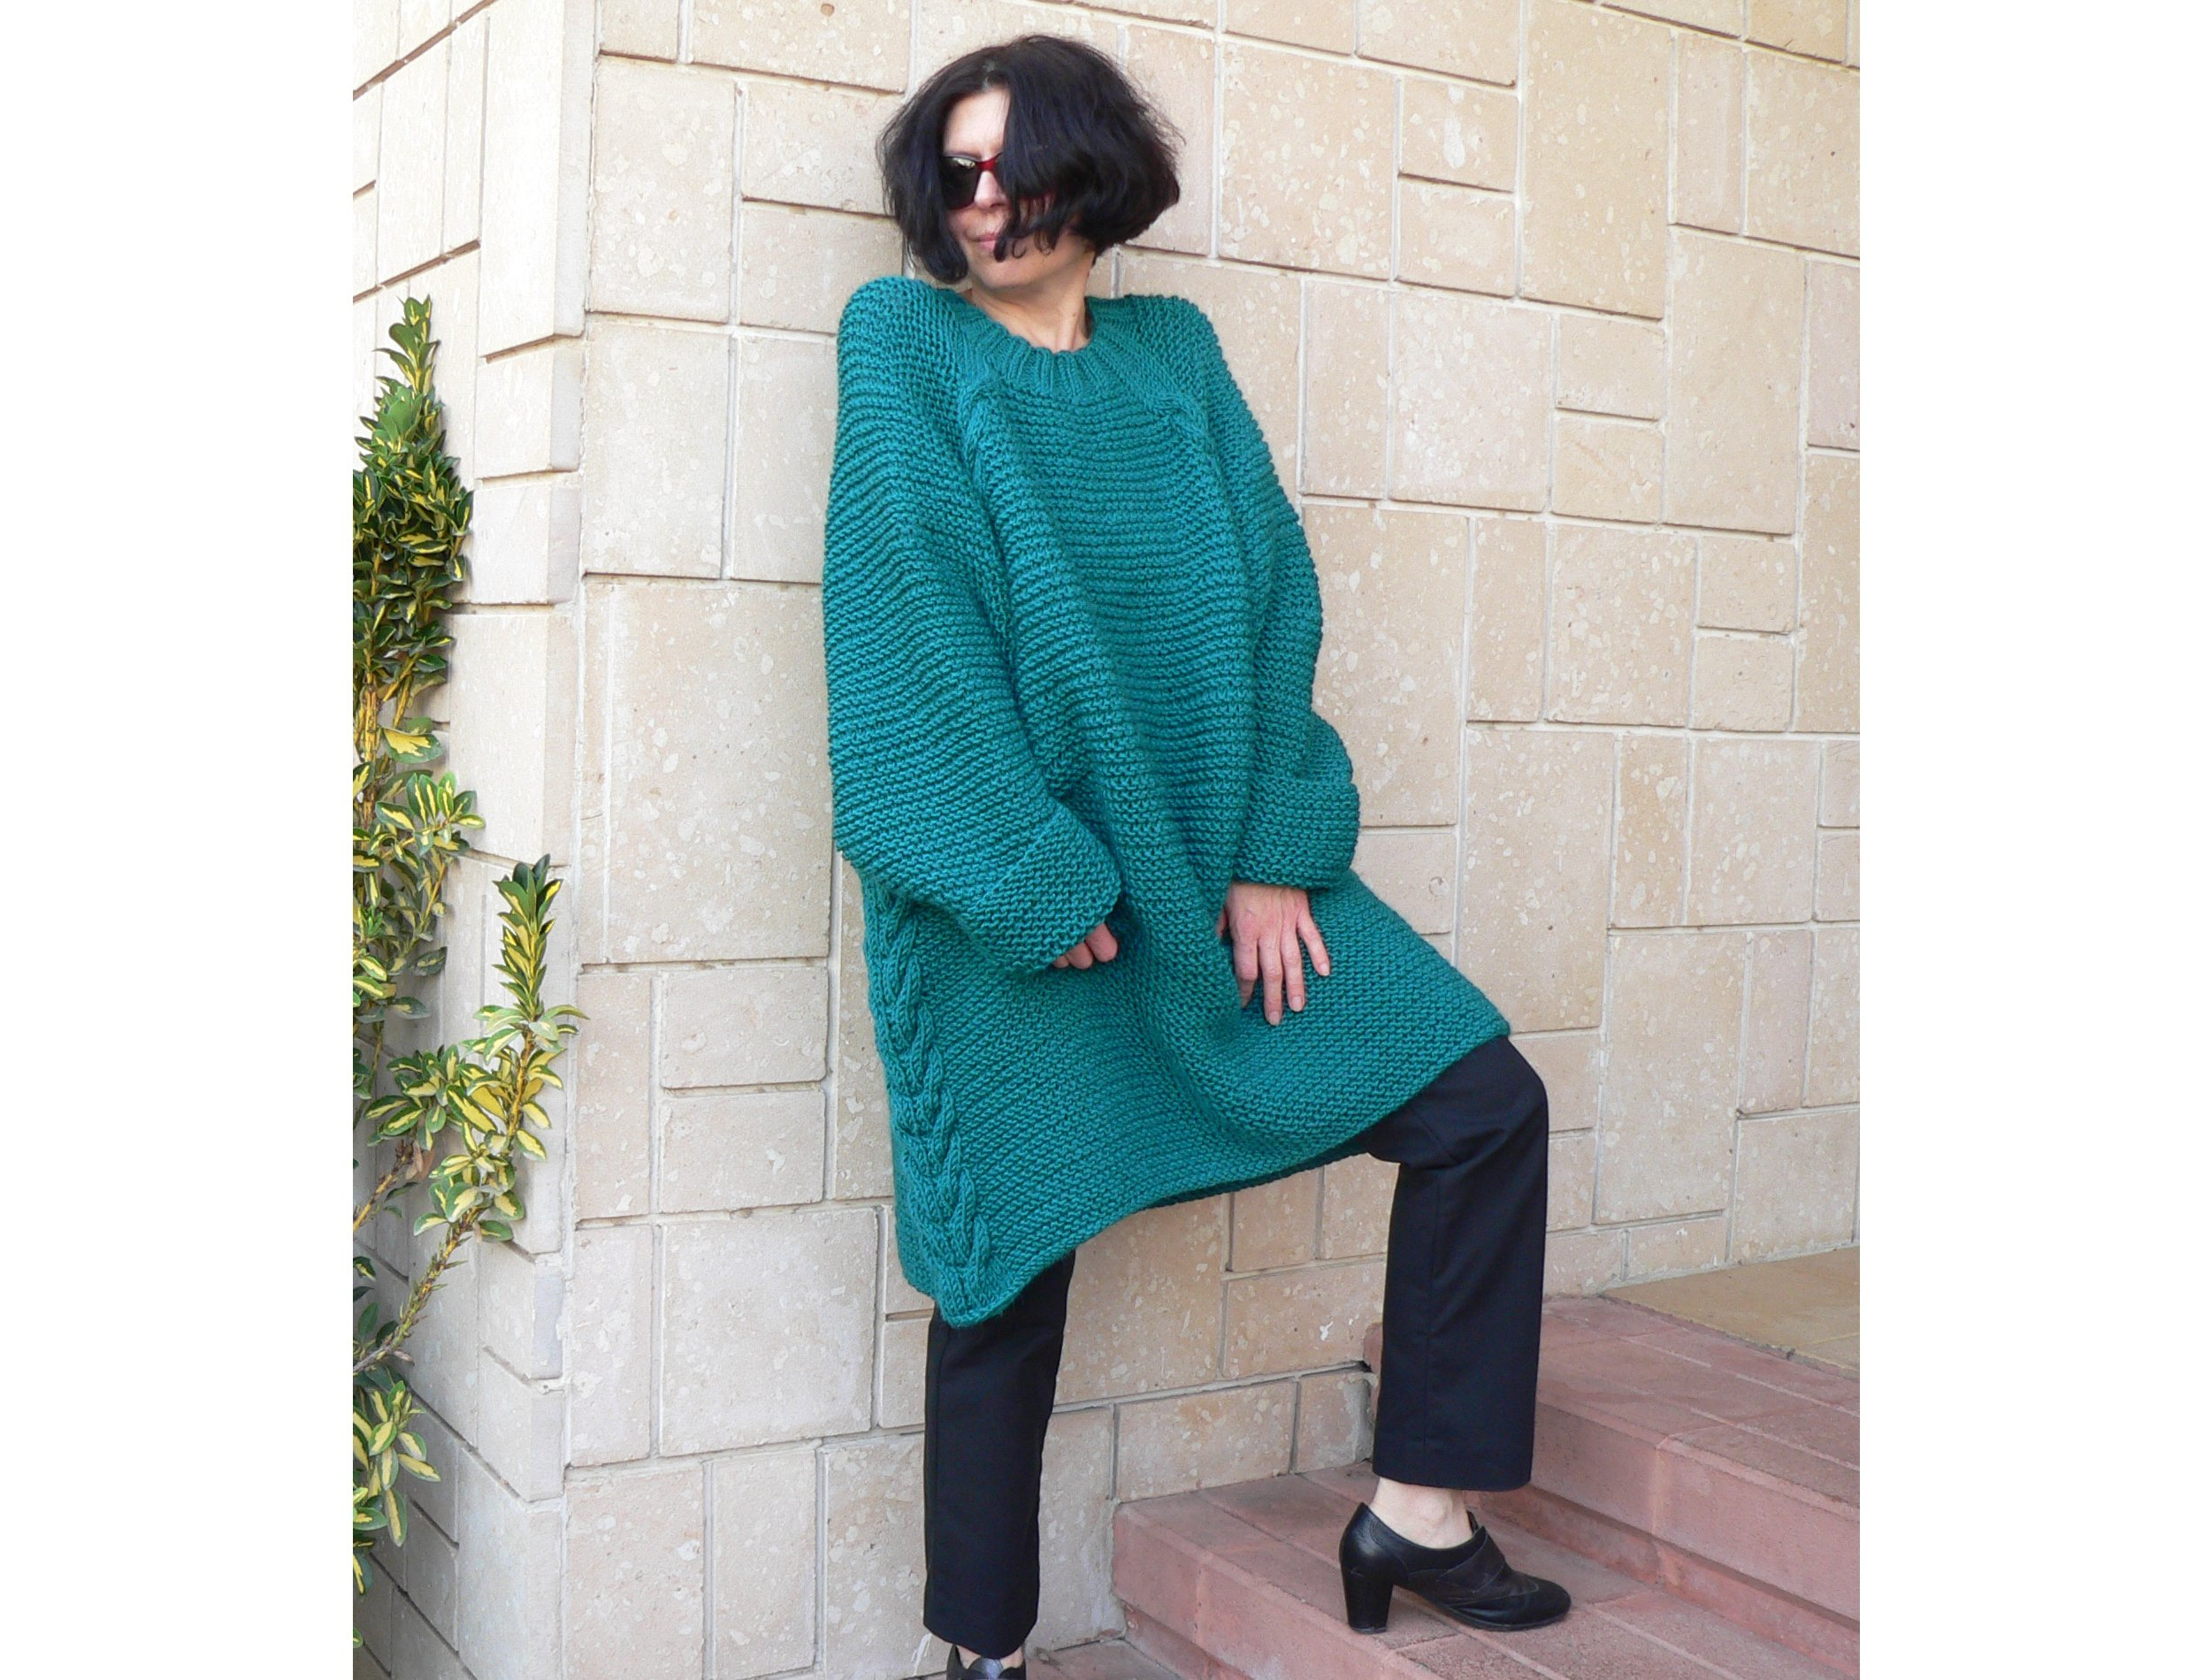 Women teal alpaca sweater